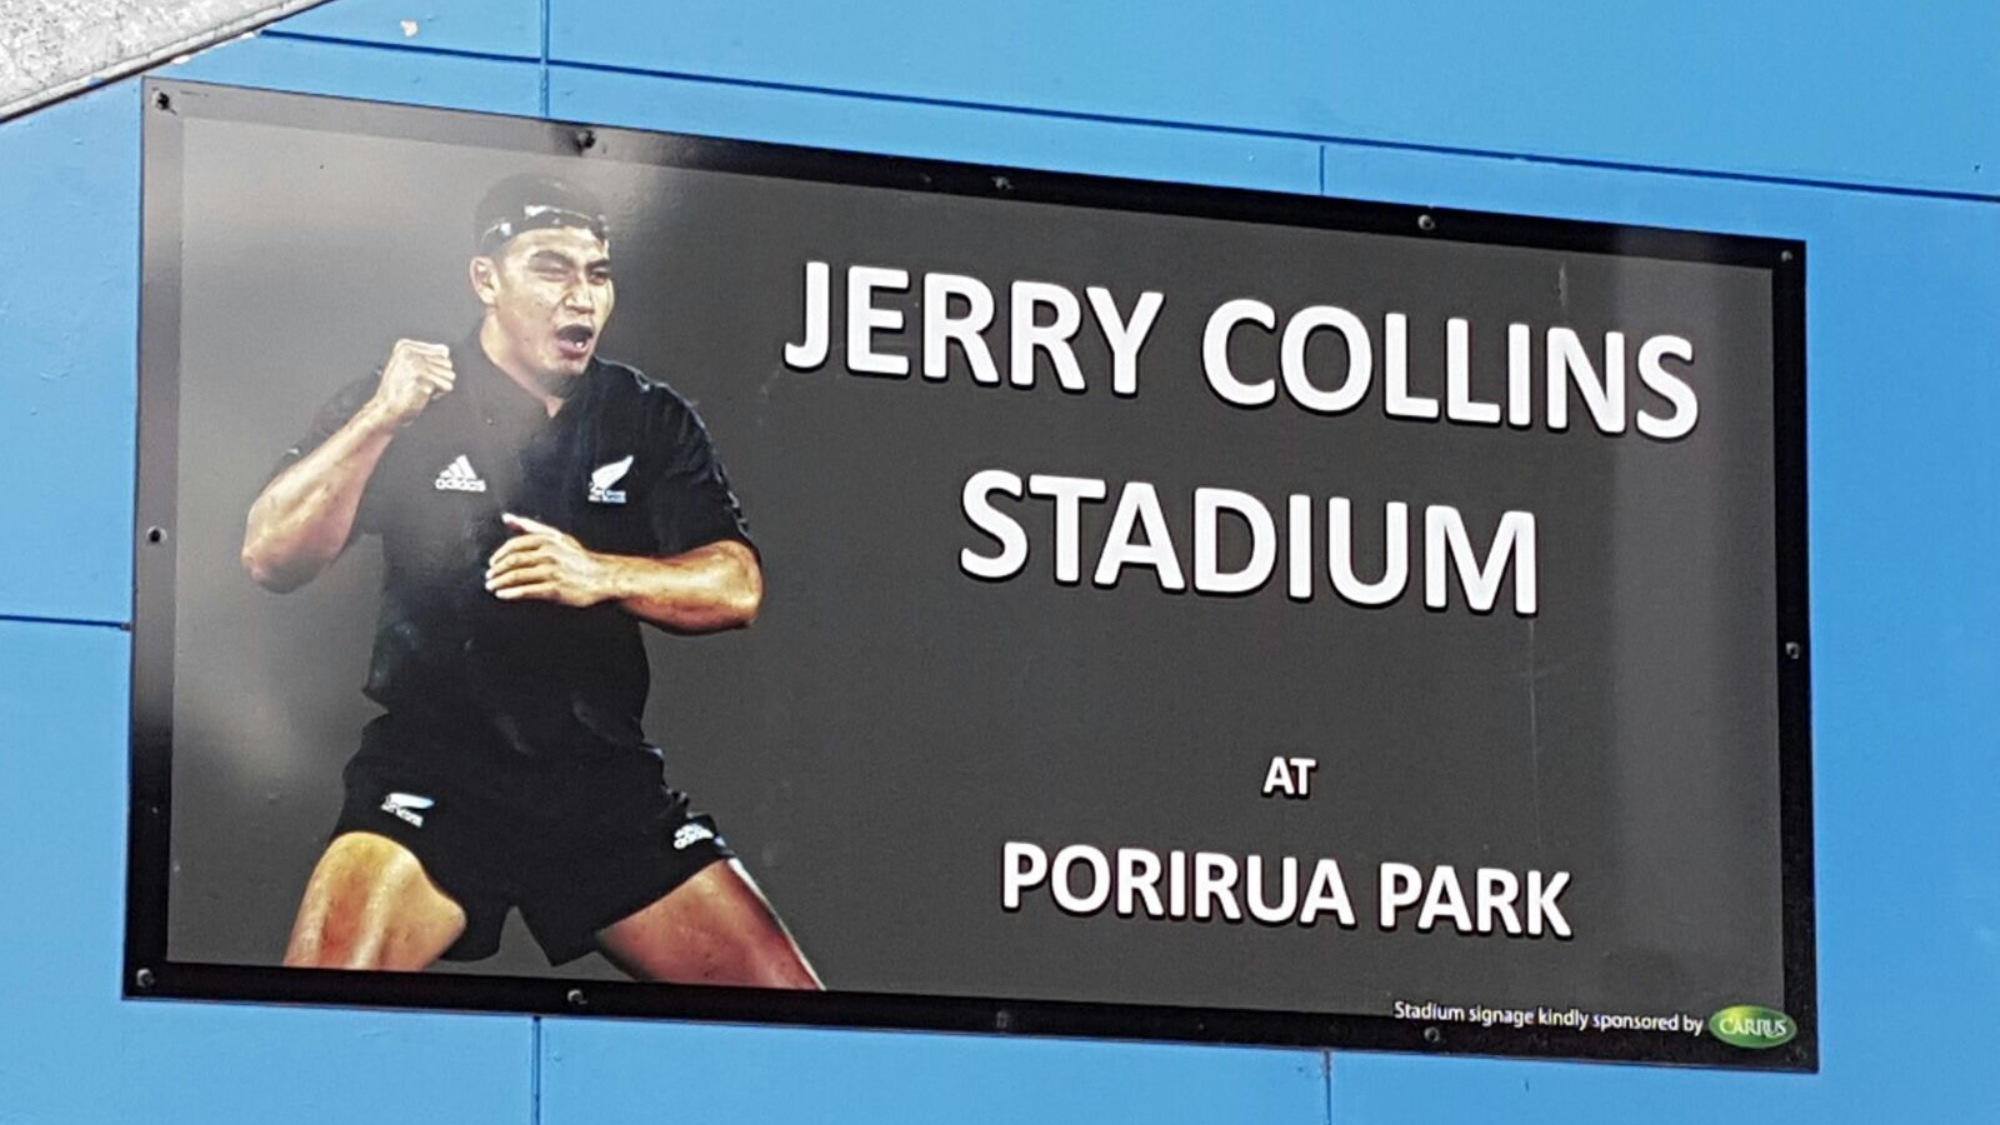 Lions welcomed at Jerry Collins Stadium on Monday